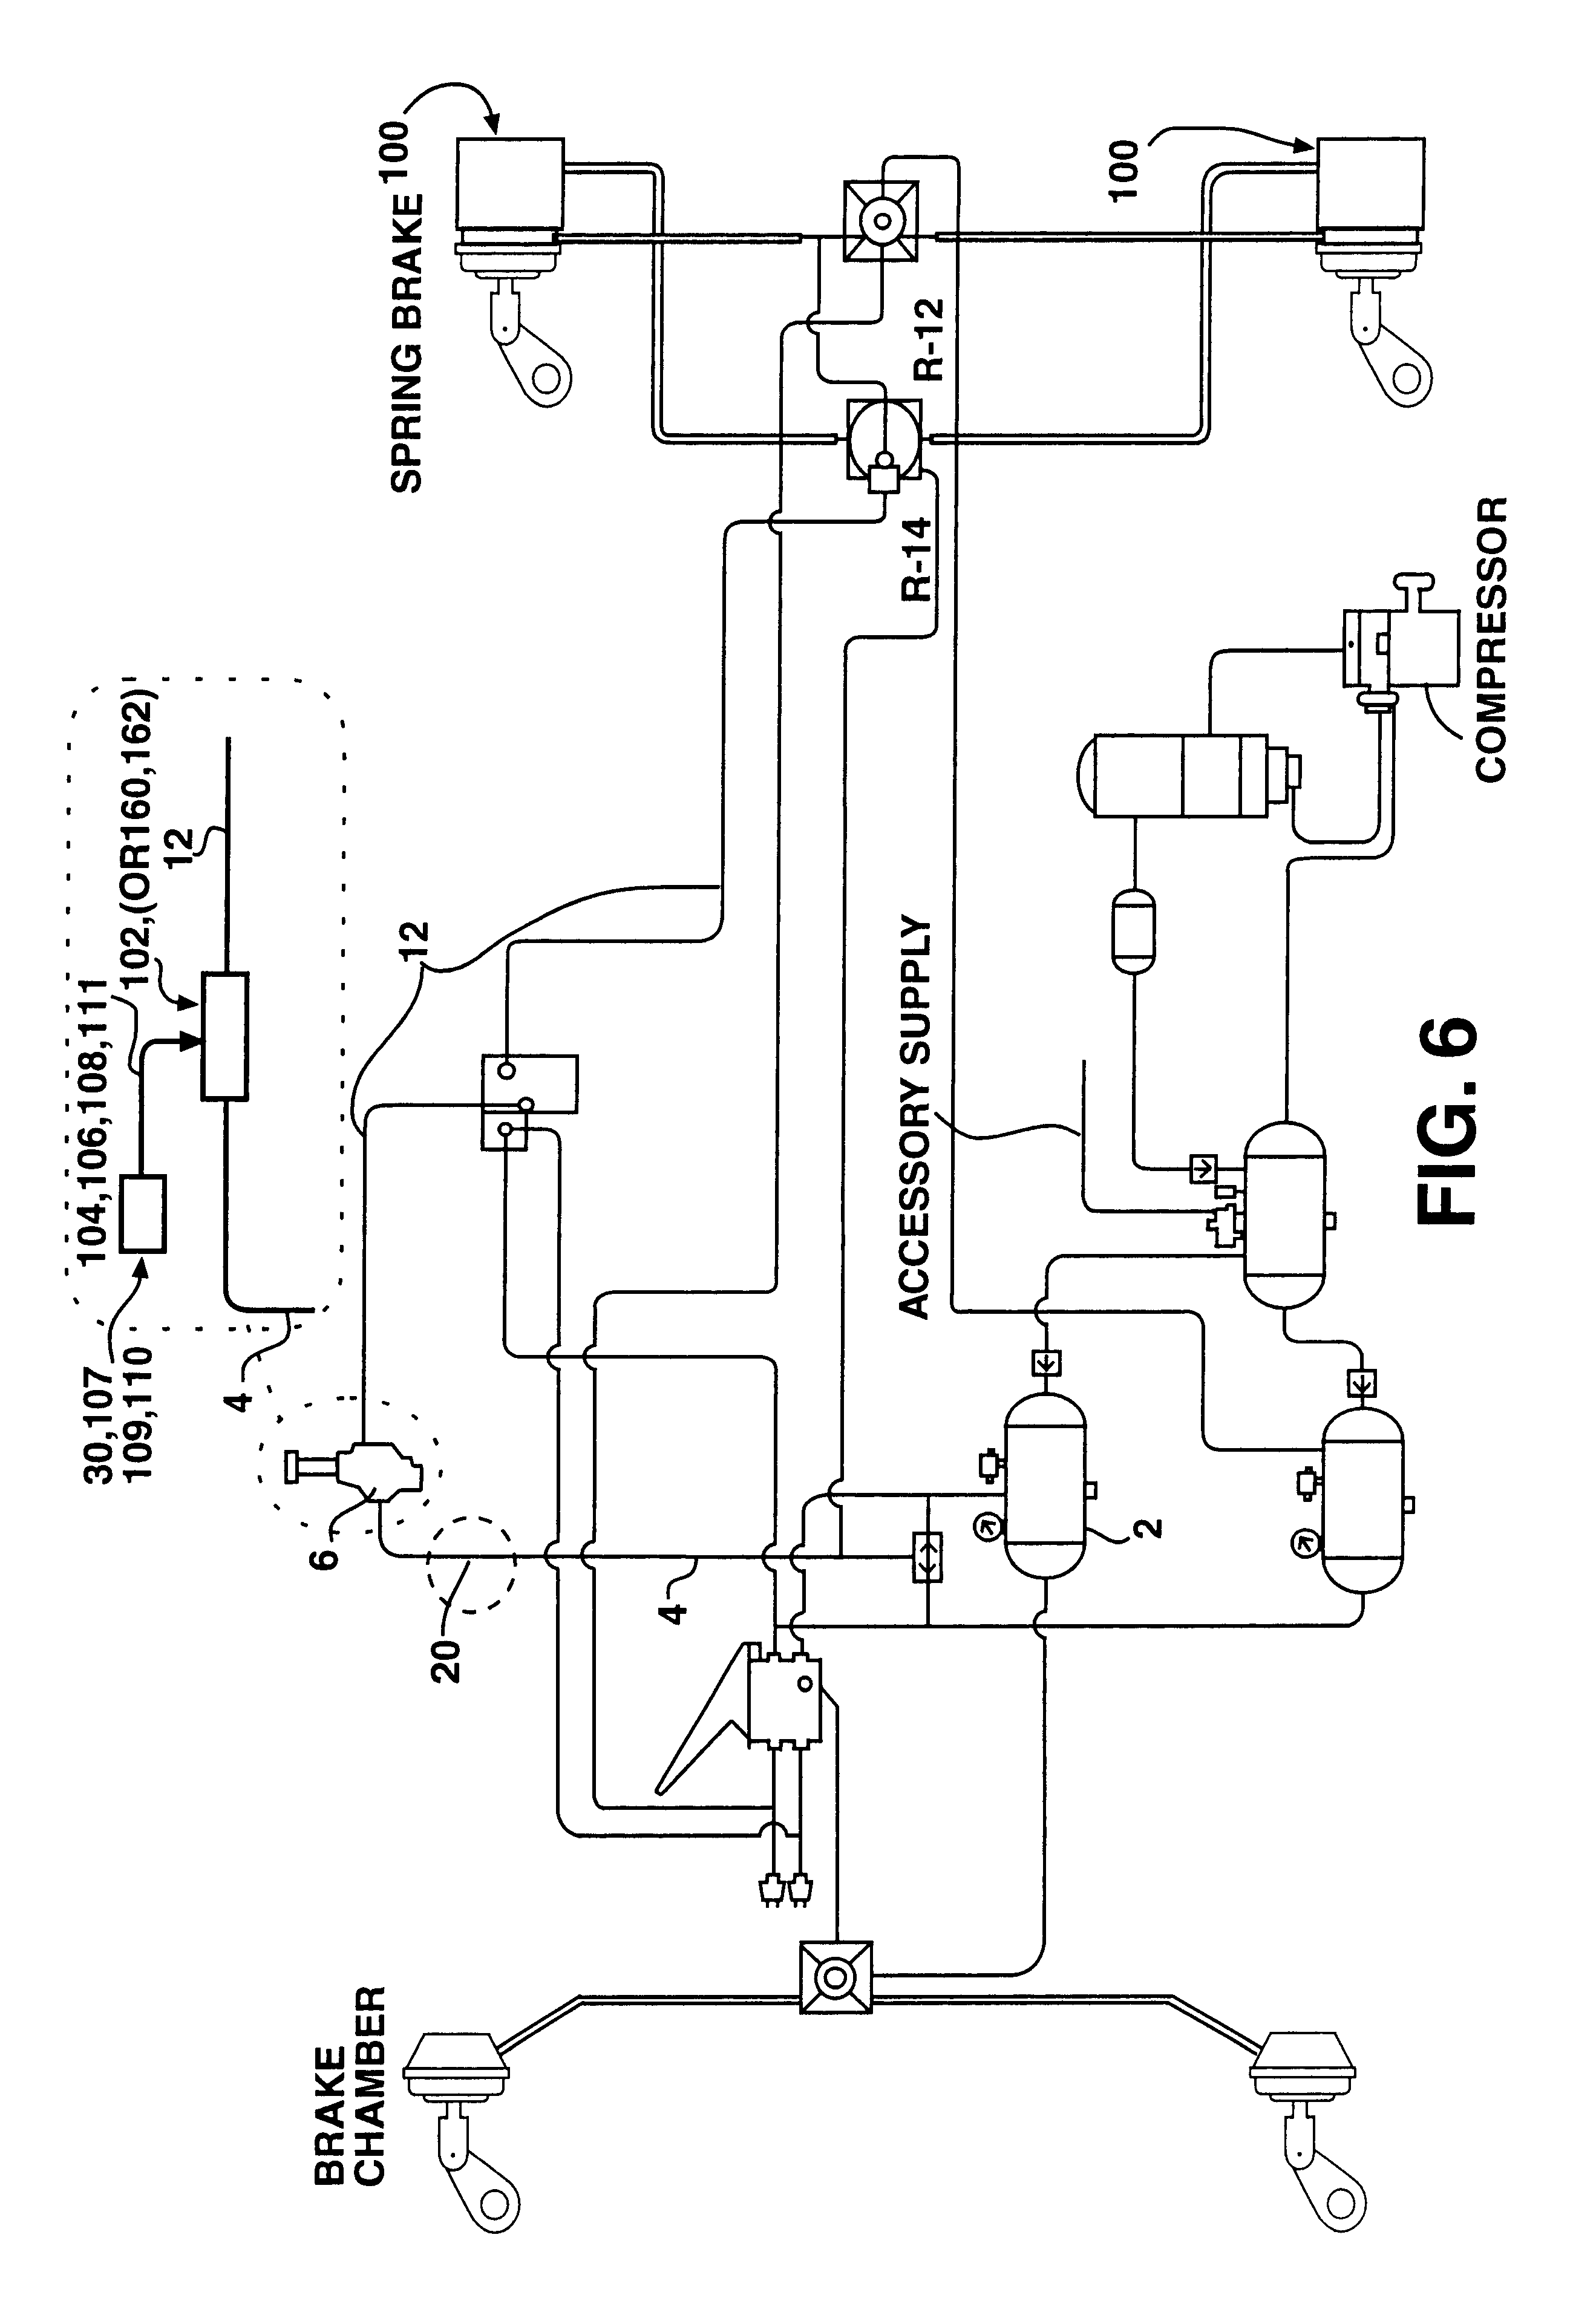 Patent Us 6450587 B1 Use The Or Circuit Composed Of Diodes And Resistors C A B